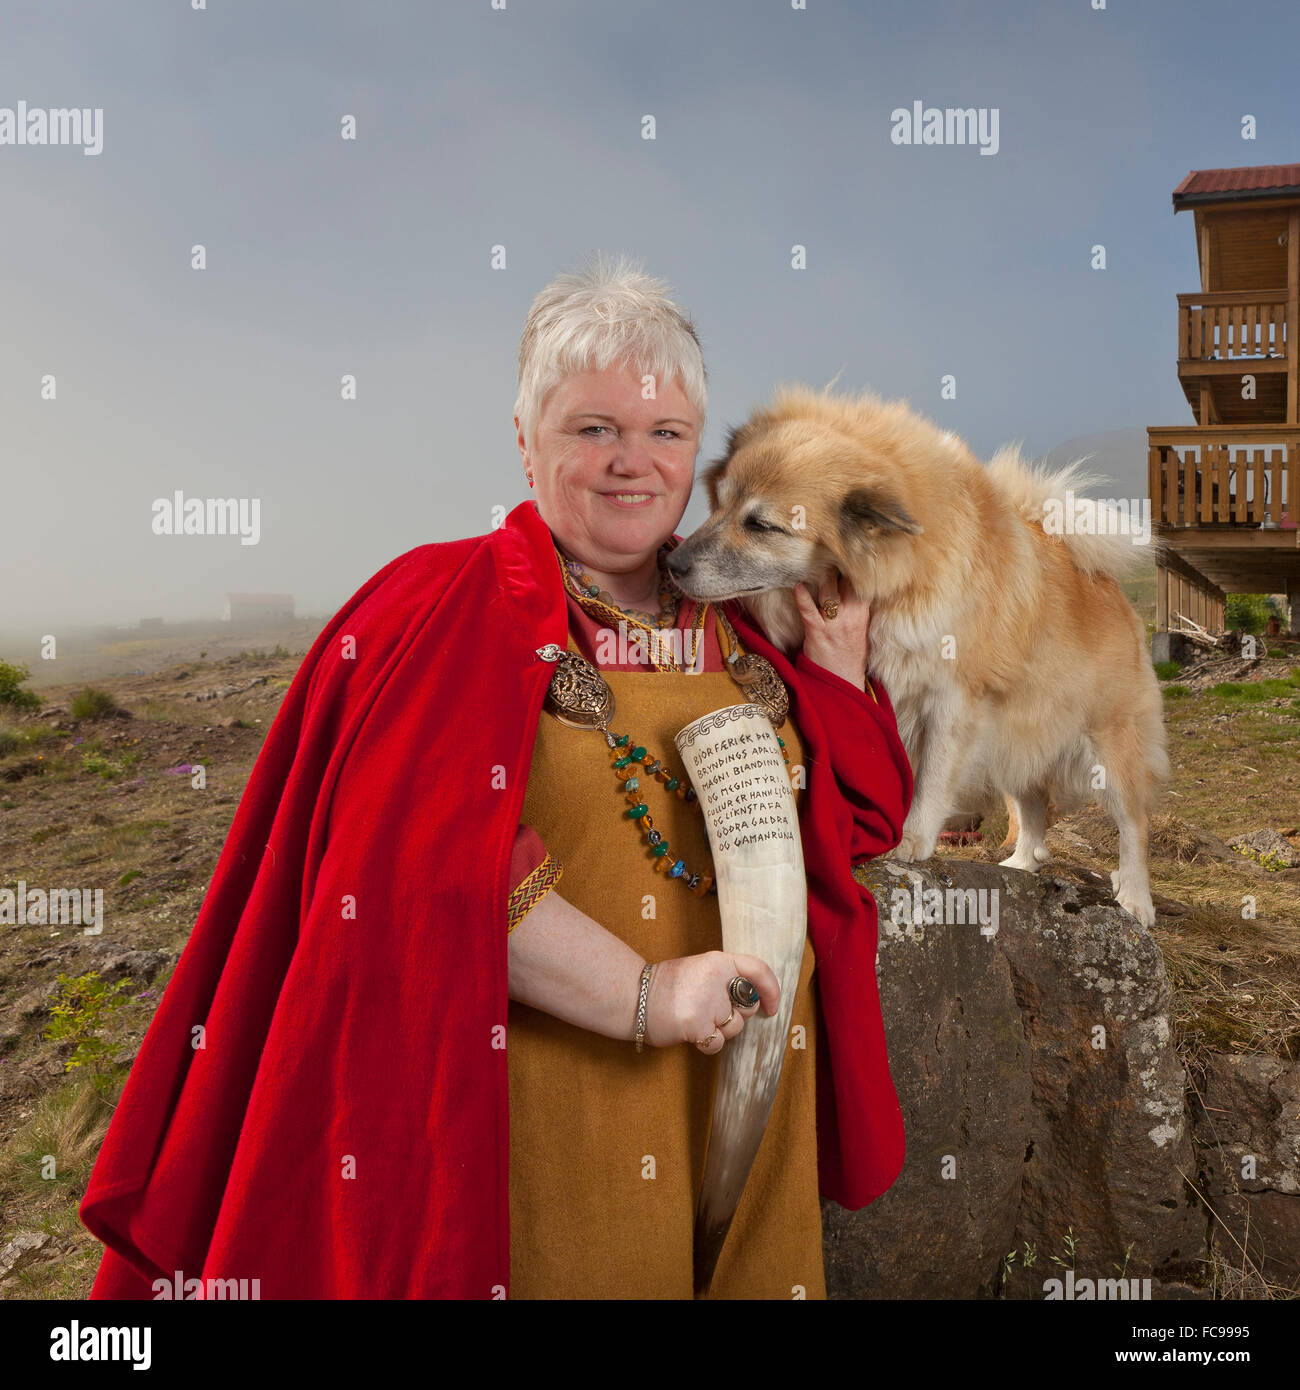 Asa Priest in traditional viking clothing, holding a bull horn. Asa beliefs also know as Paganism. - Stock Image